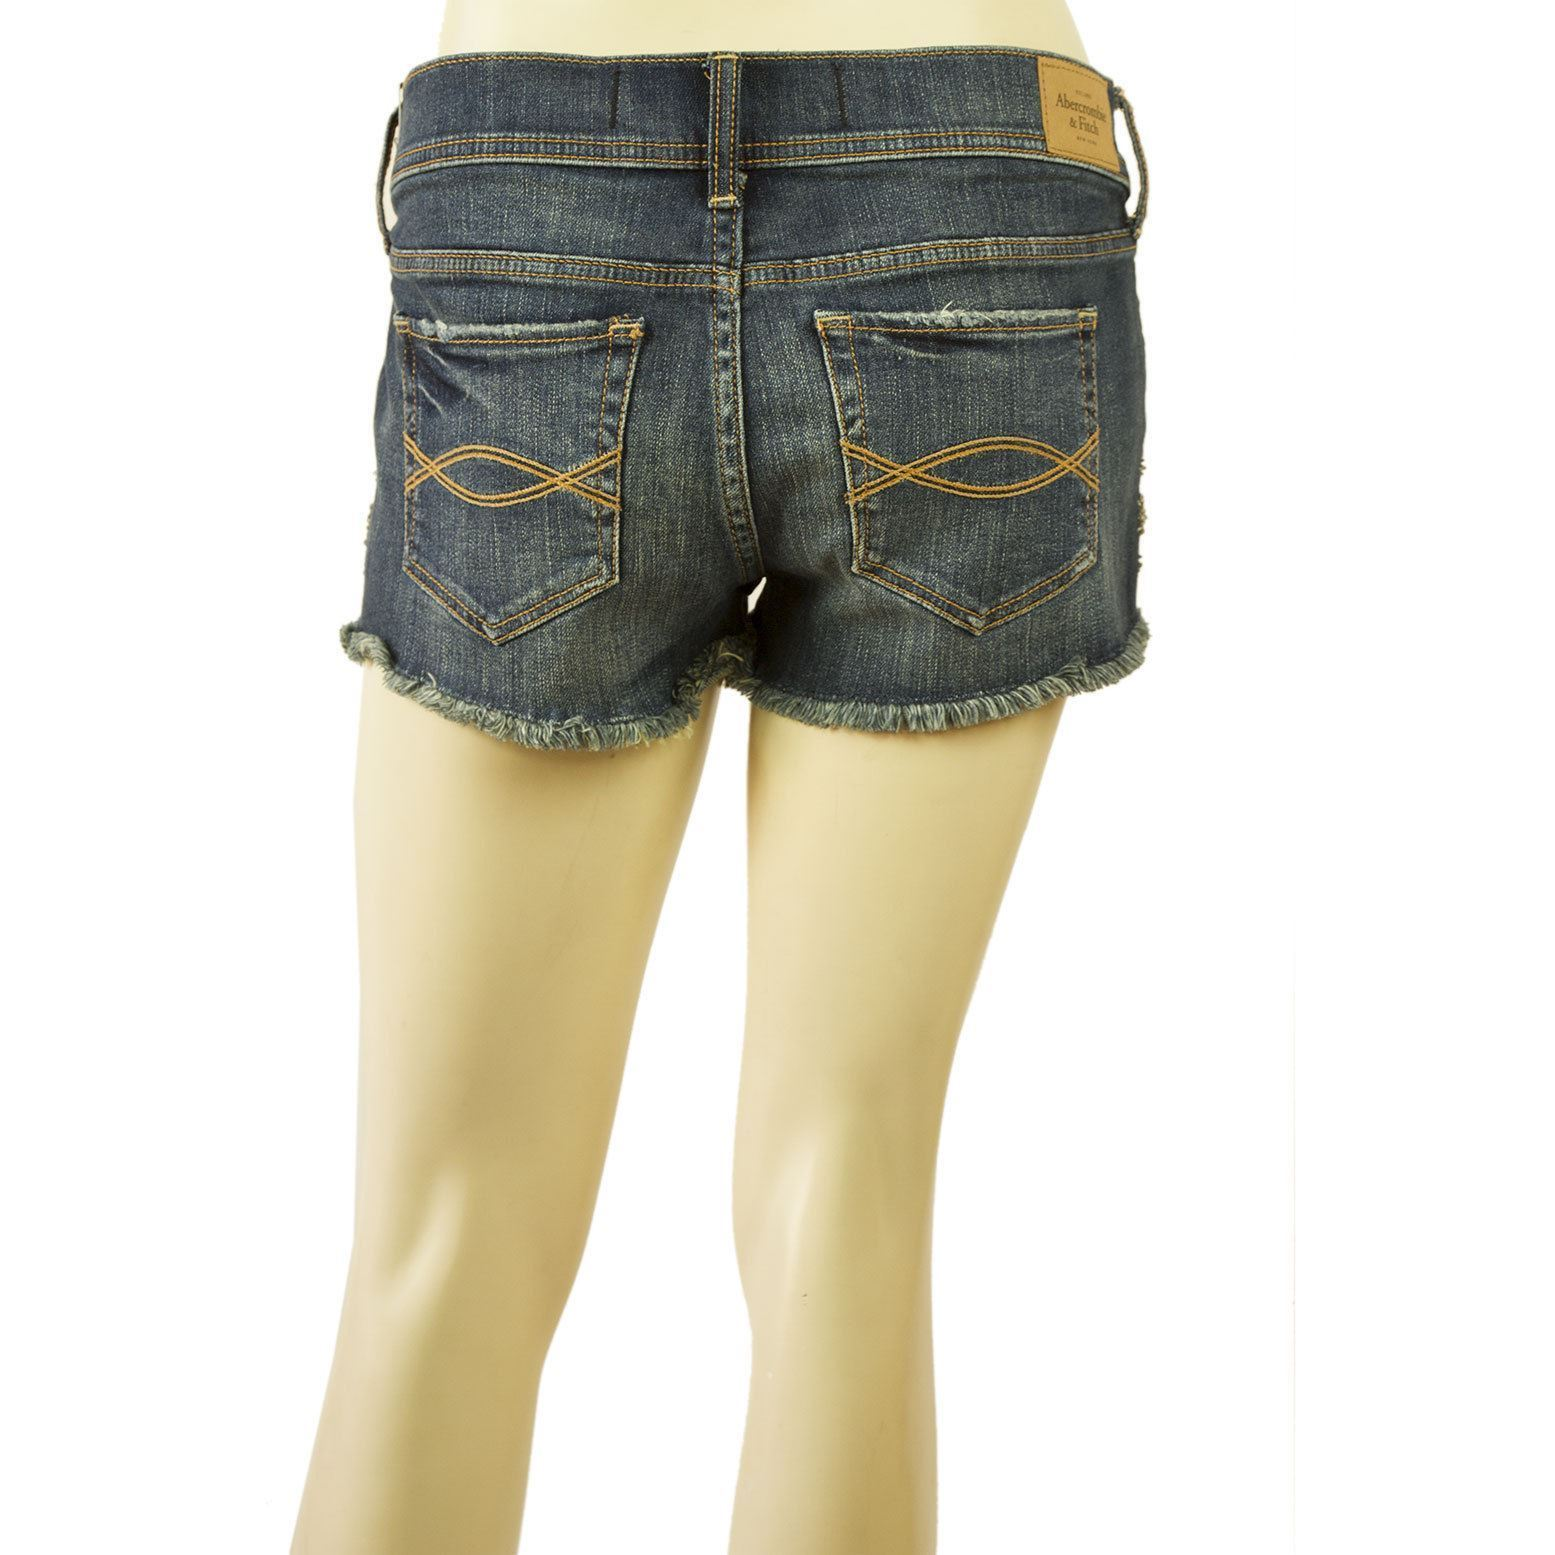 Abercrombie & Fitch Distressed Denim Jeans Beaded Stars Shorts Size 29 ( 8 )